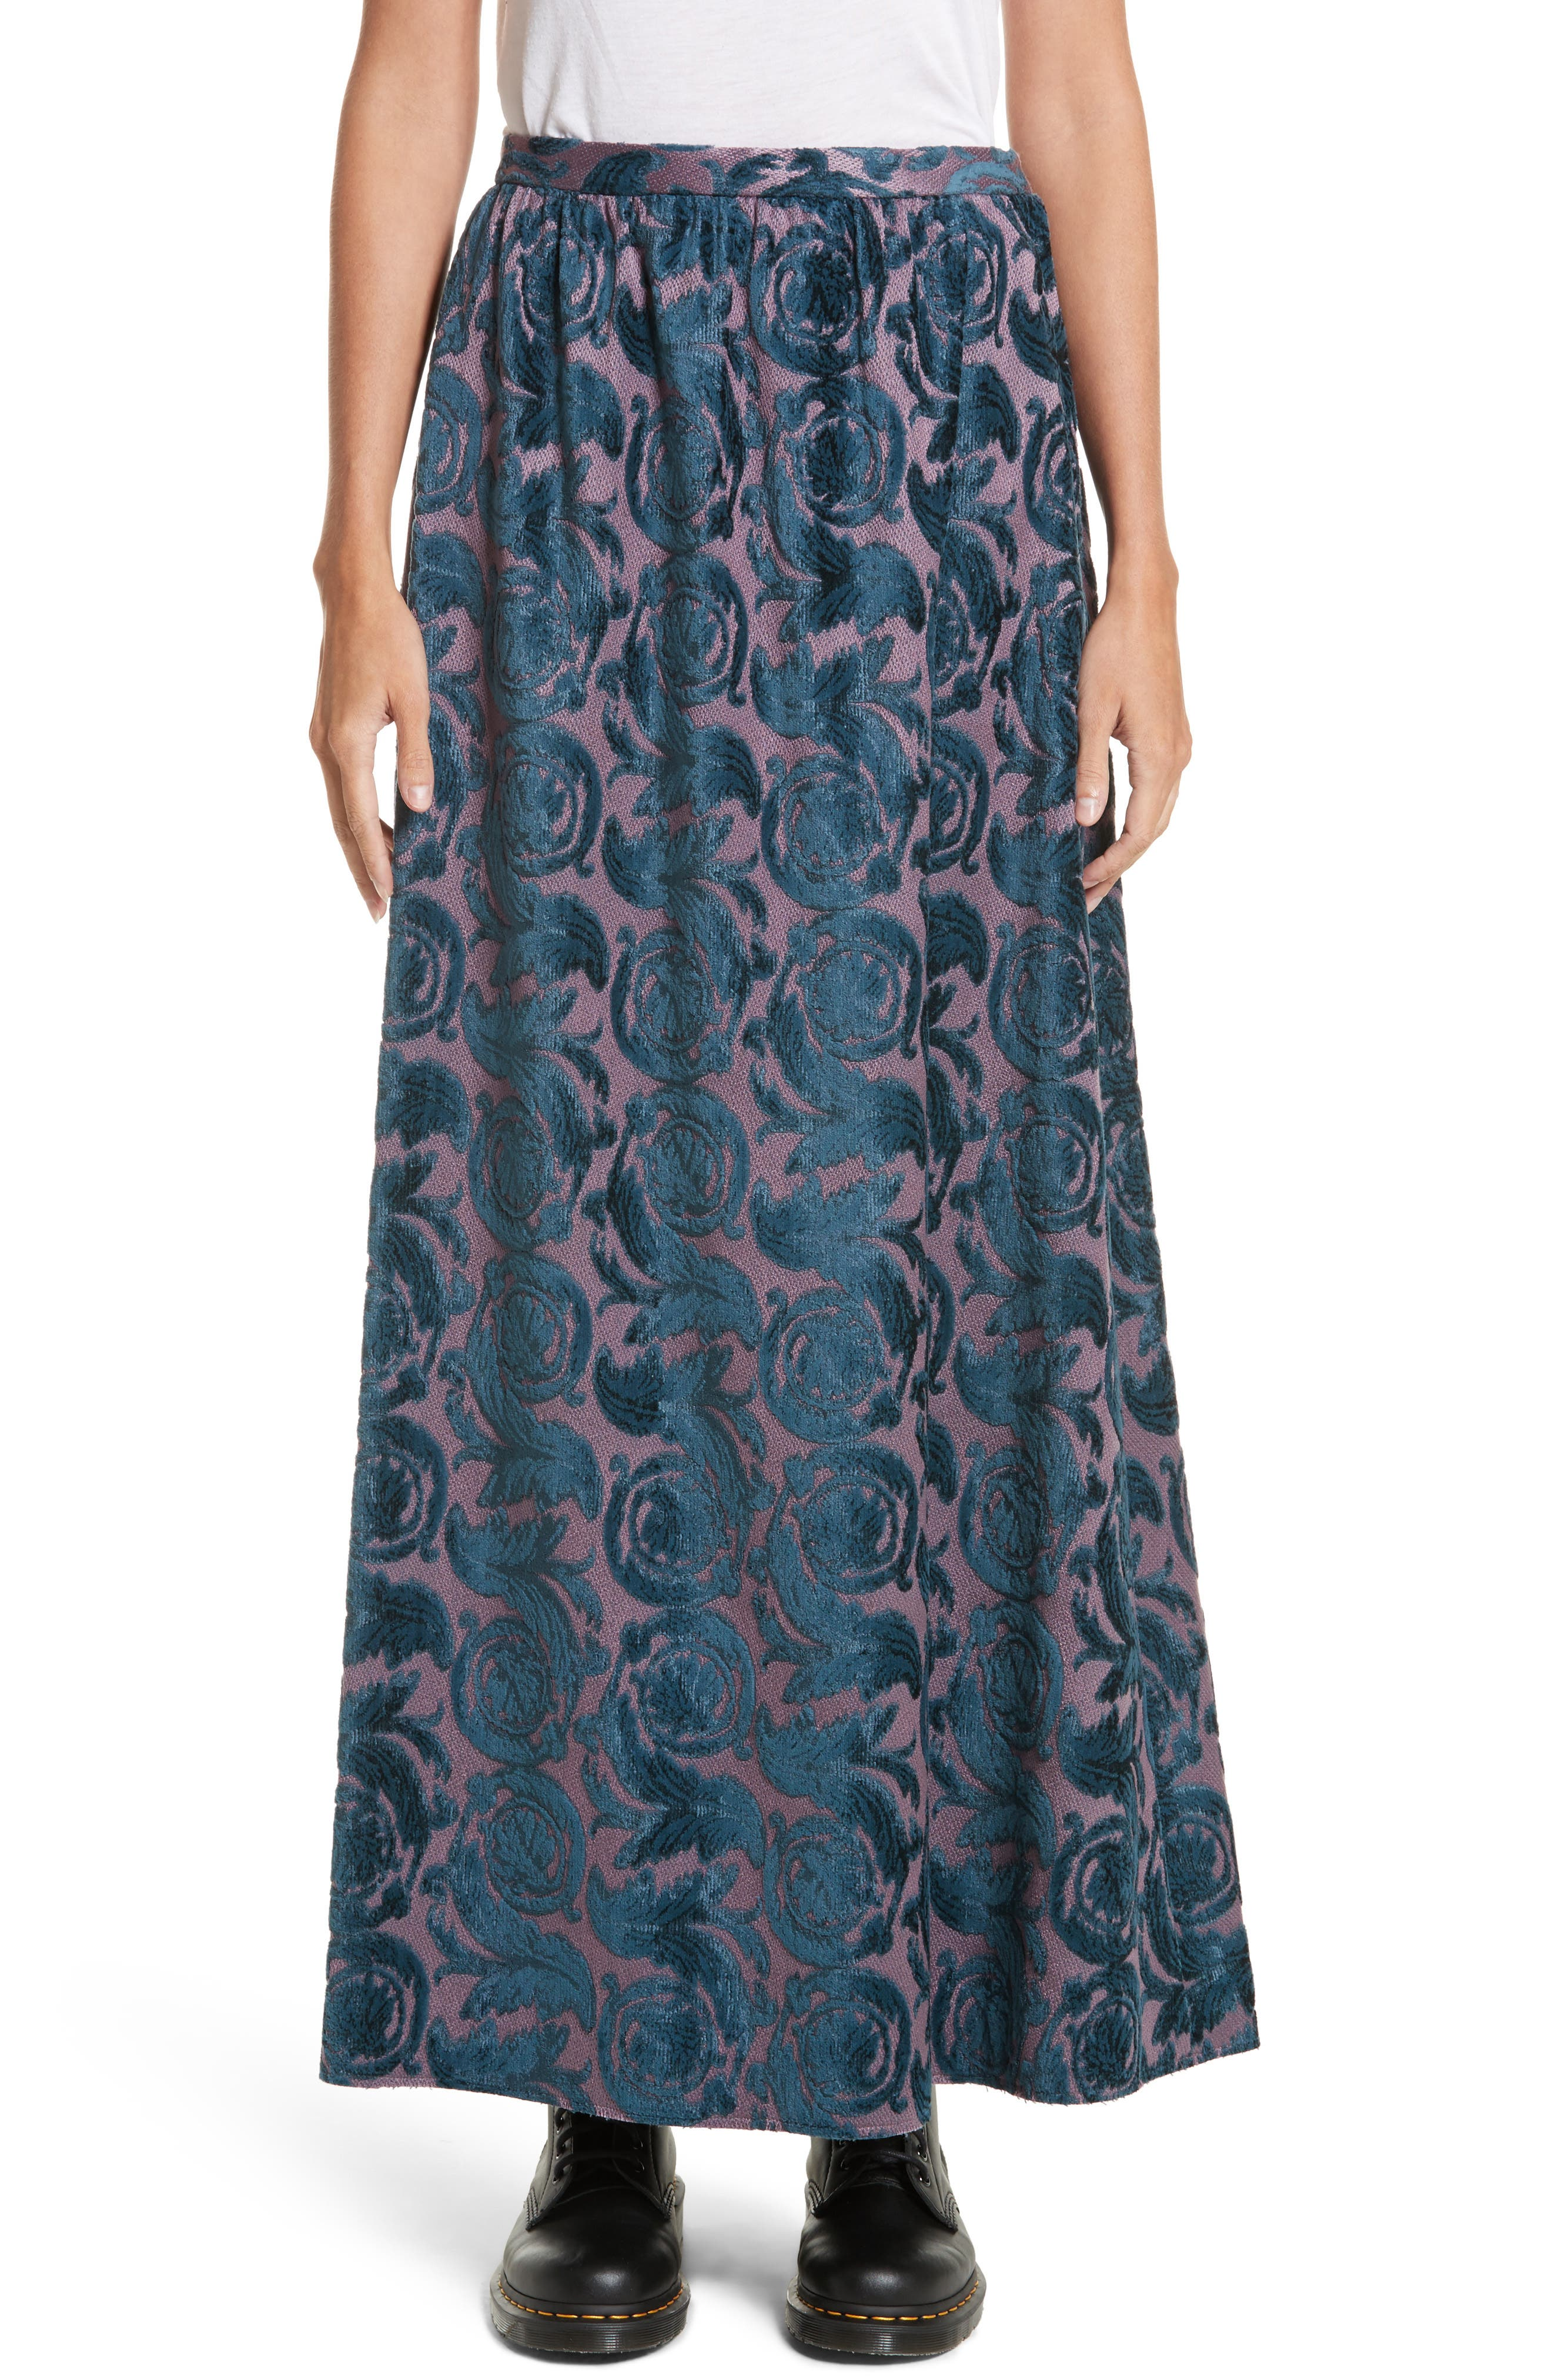 Undercover Flocked Maxi Skirt